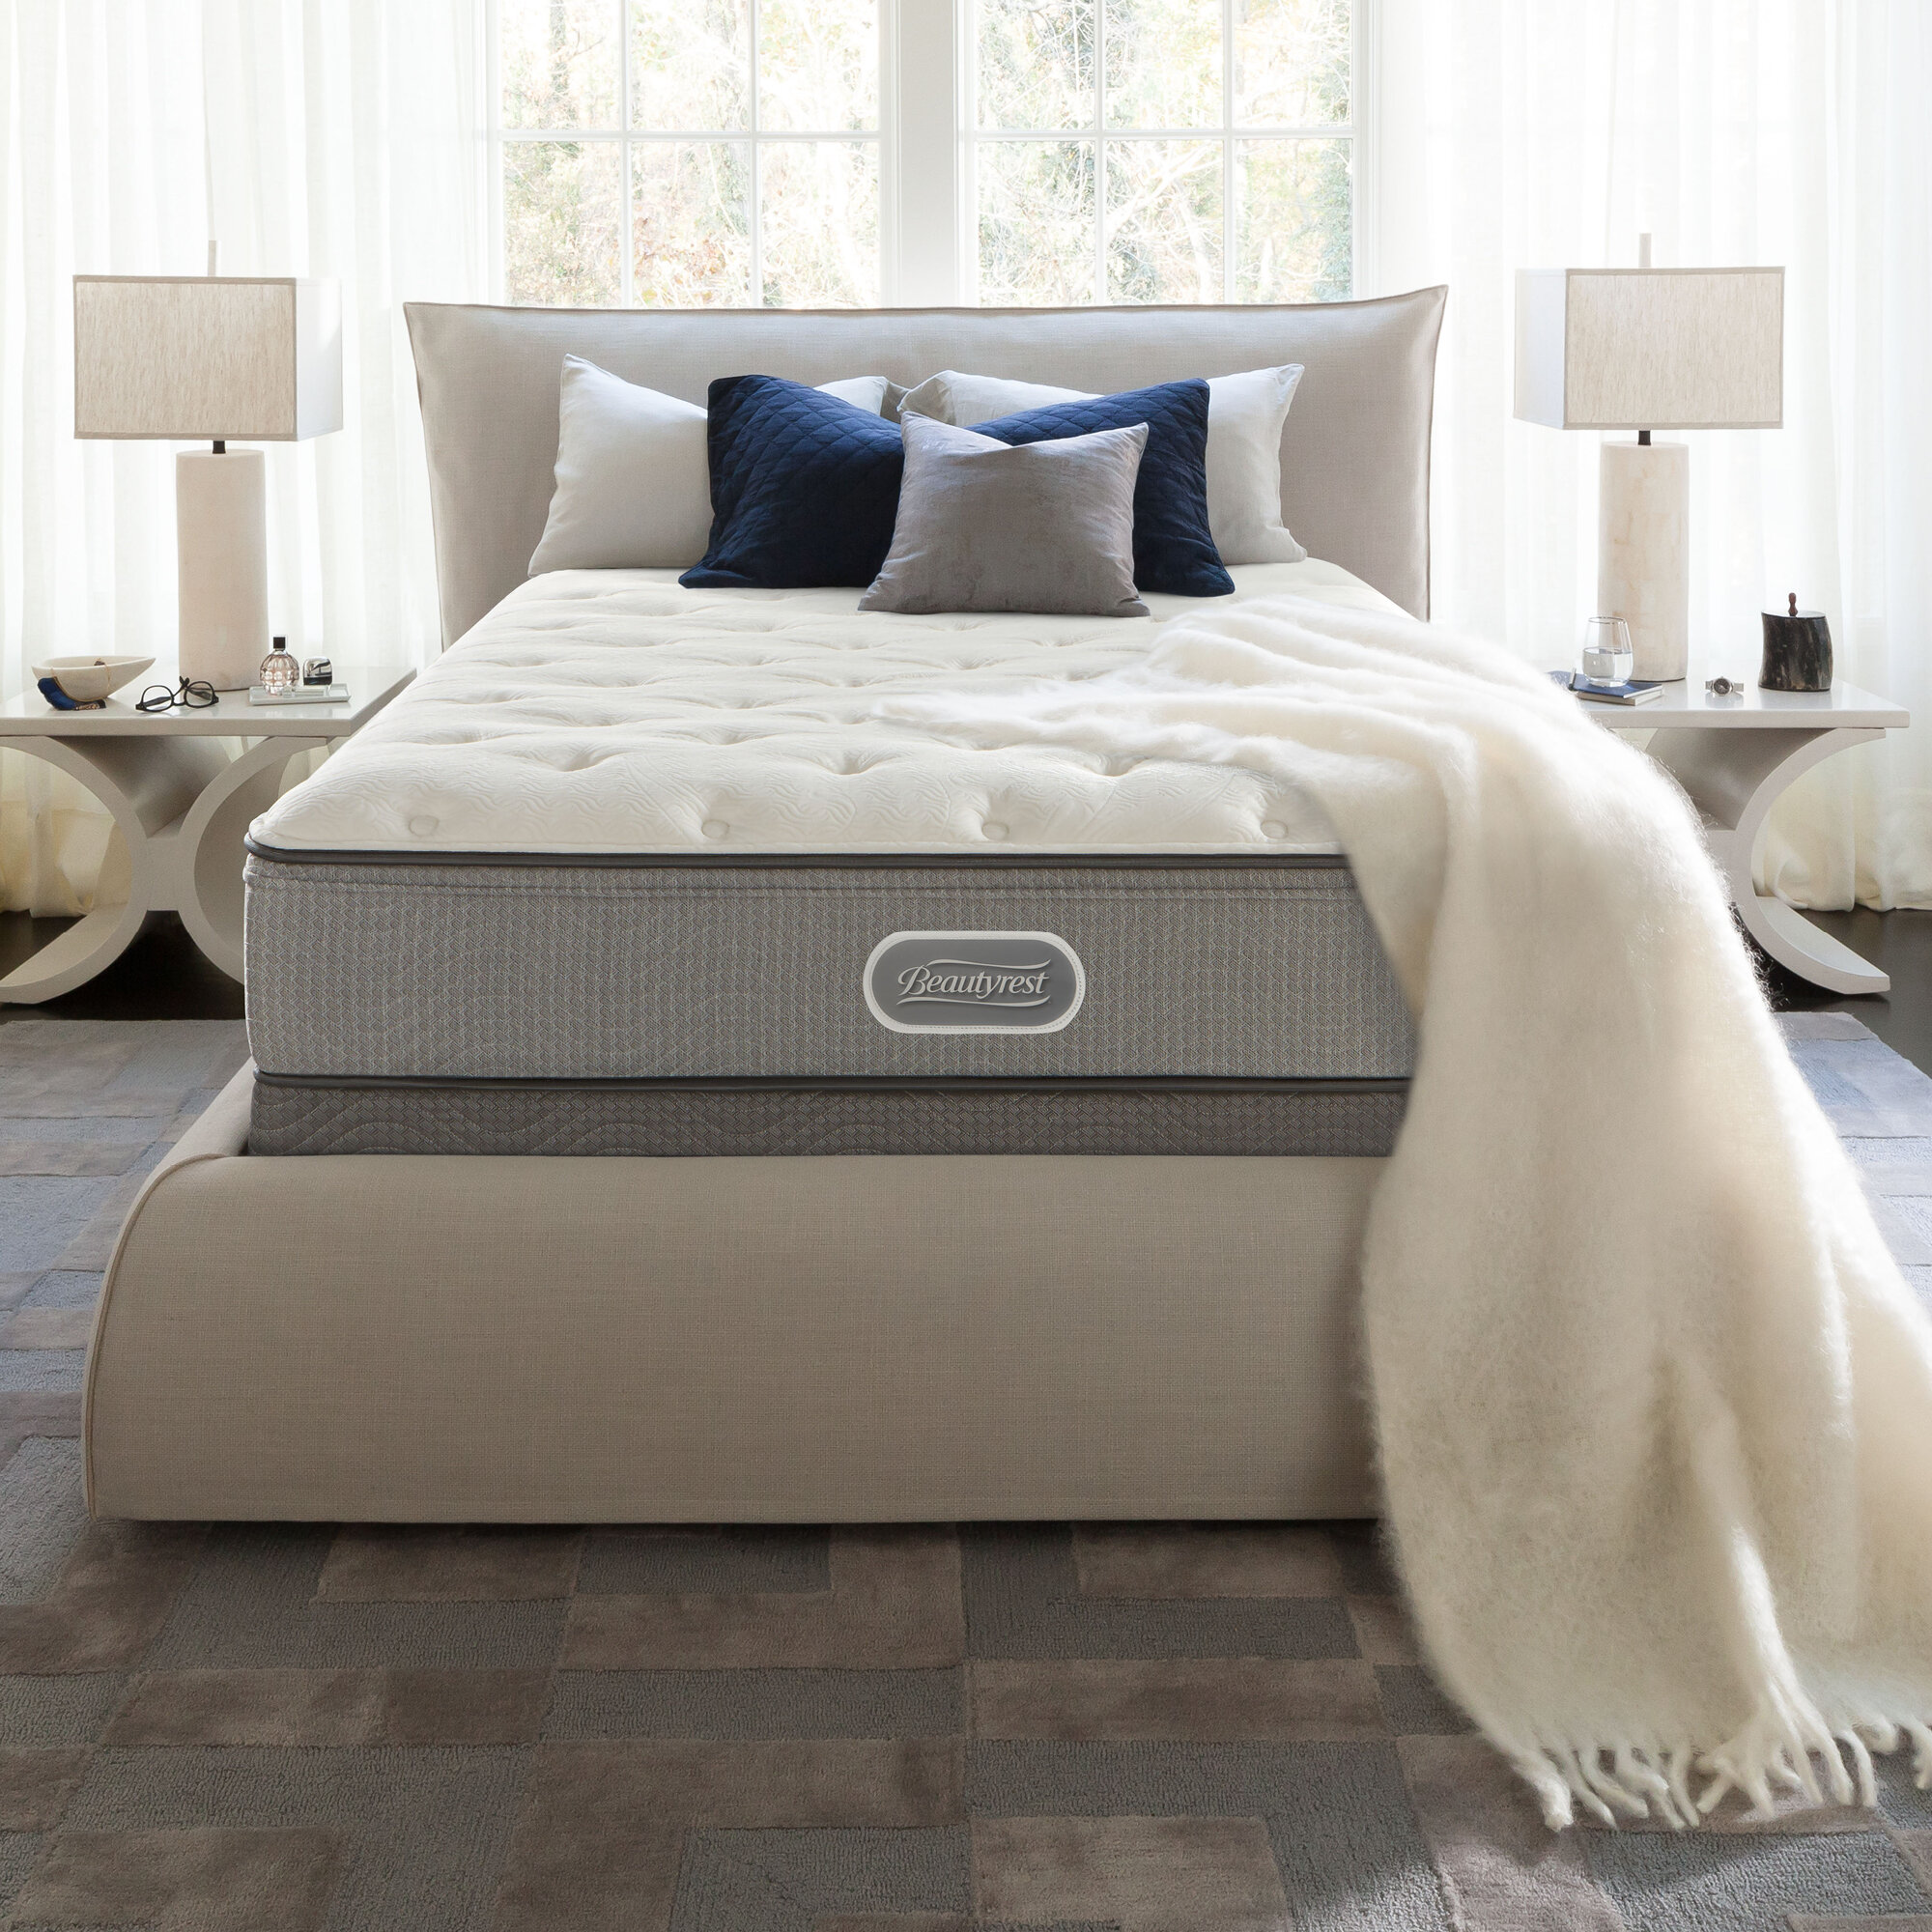 now beds topper pillow bed deluxe online top buy divan a mattress only utopia from